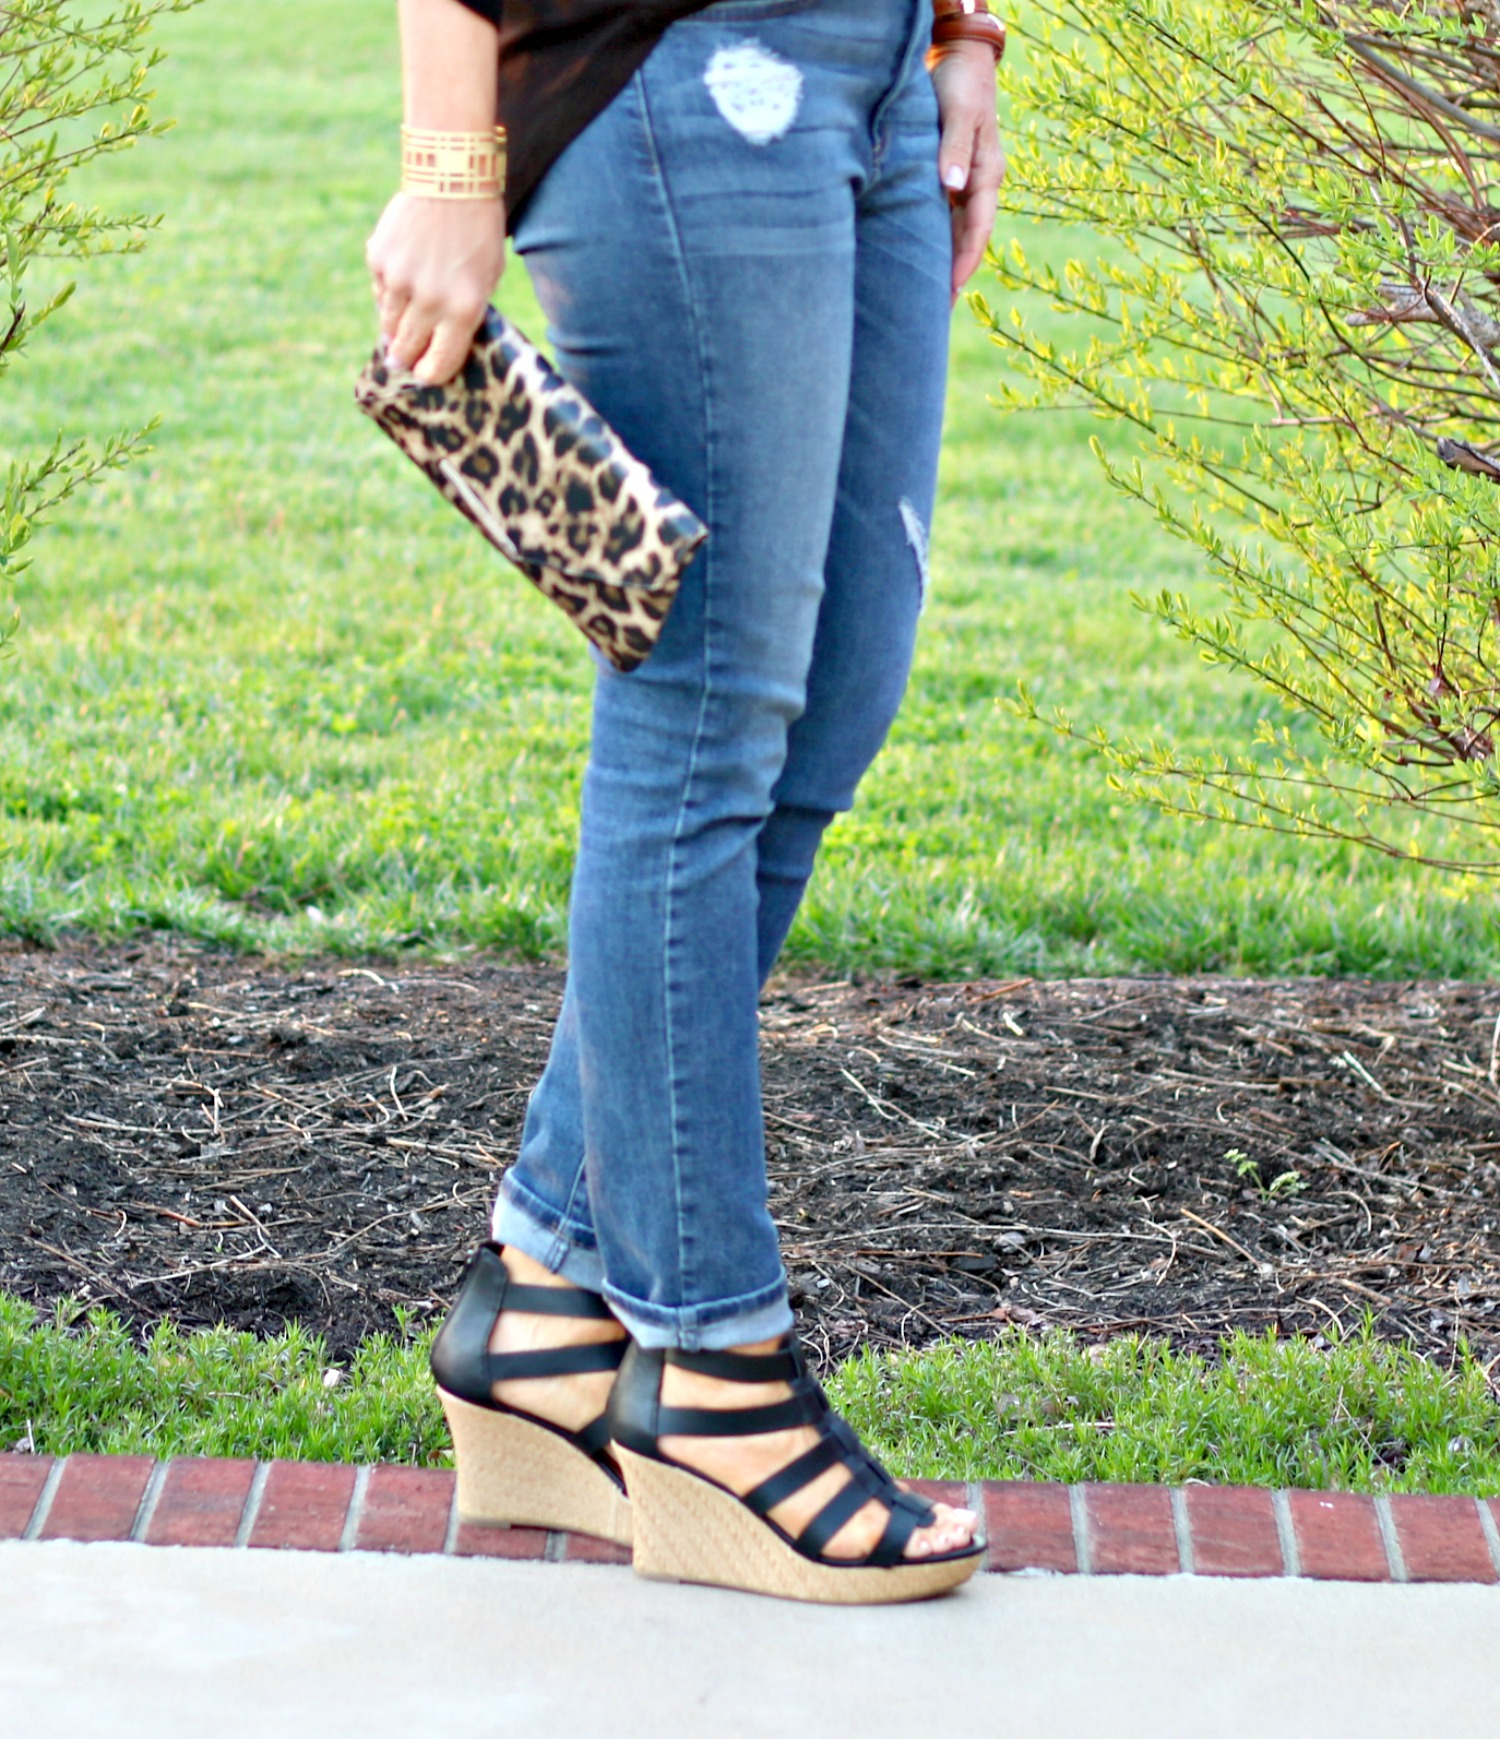 27 Days of Spring Fashion: The Perfect Wedge